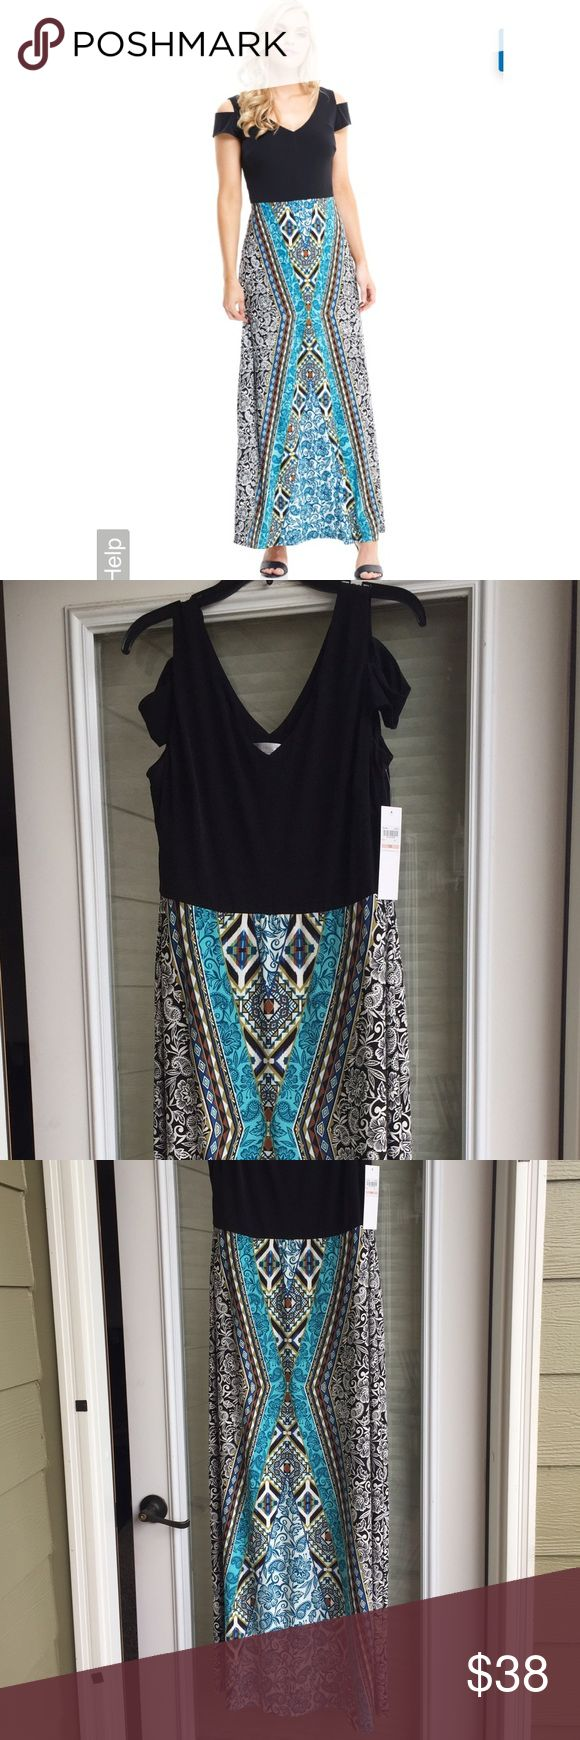 London Times Layla Maxi - Blue Dress size 12 Layla features a black top with a v-neckline and cut-out sleeves and a maxi bottom with bold aztec prints. It makes for a chic yet subtle weekend look. London Times Dresses Maxi